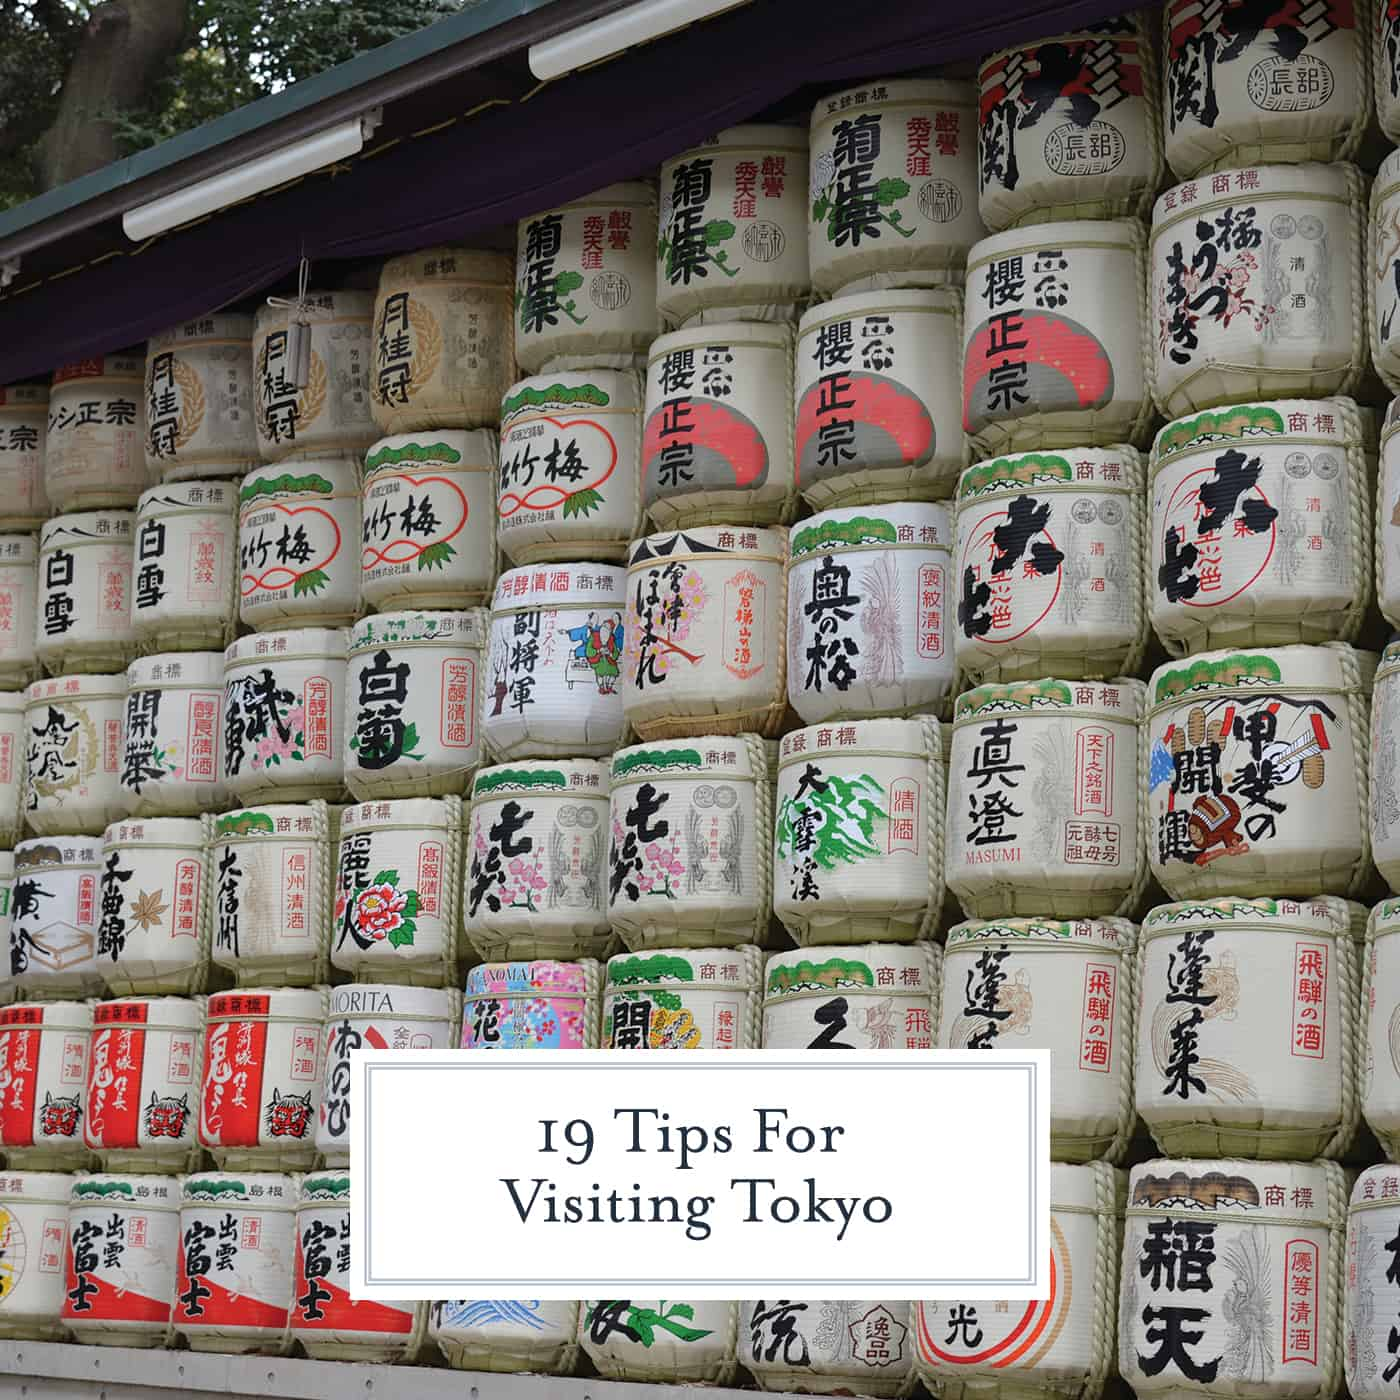 19 tips and tidbits to know before your visit to Tokyo. Make the trip smoother by reading this short article! #tokyo www.savoryexperiments.com